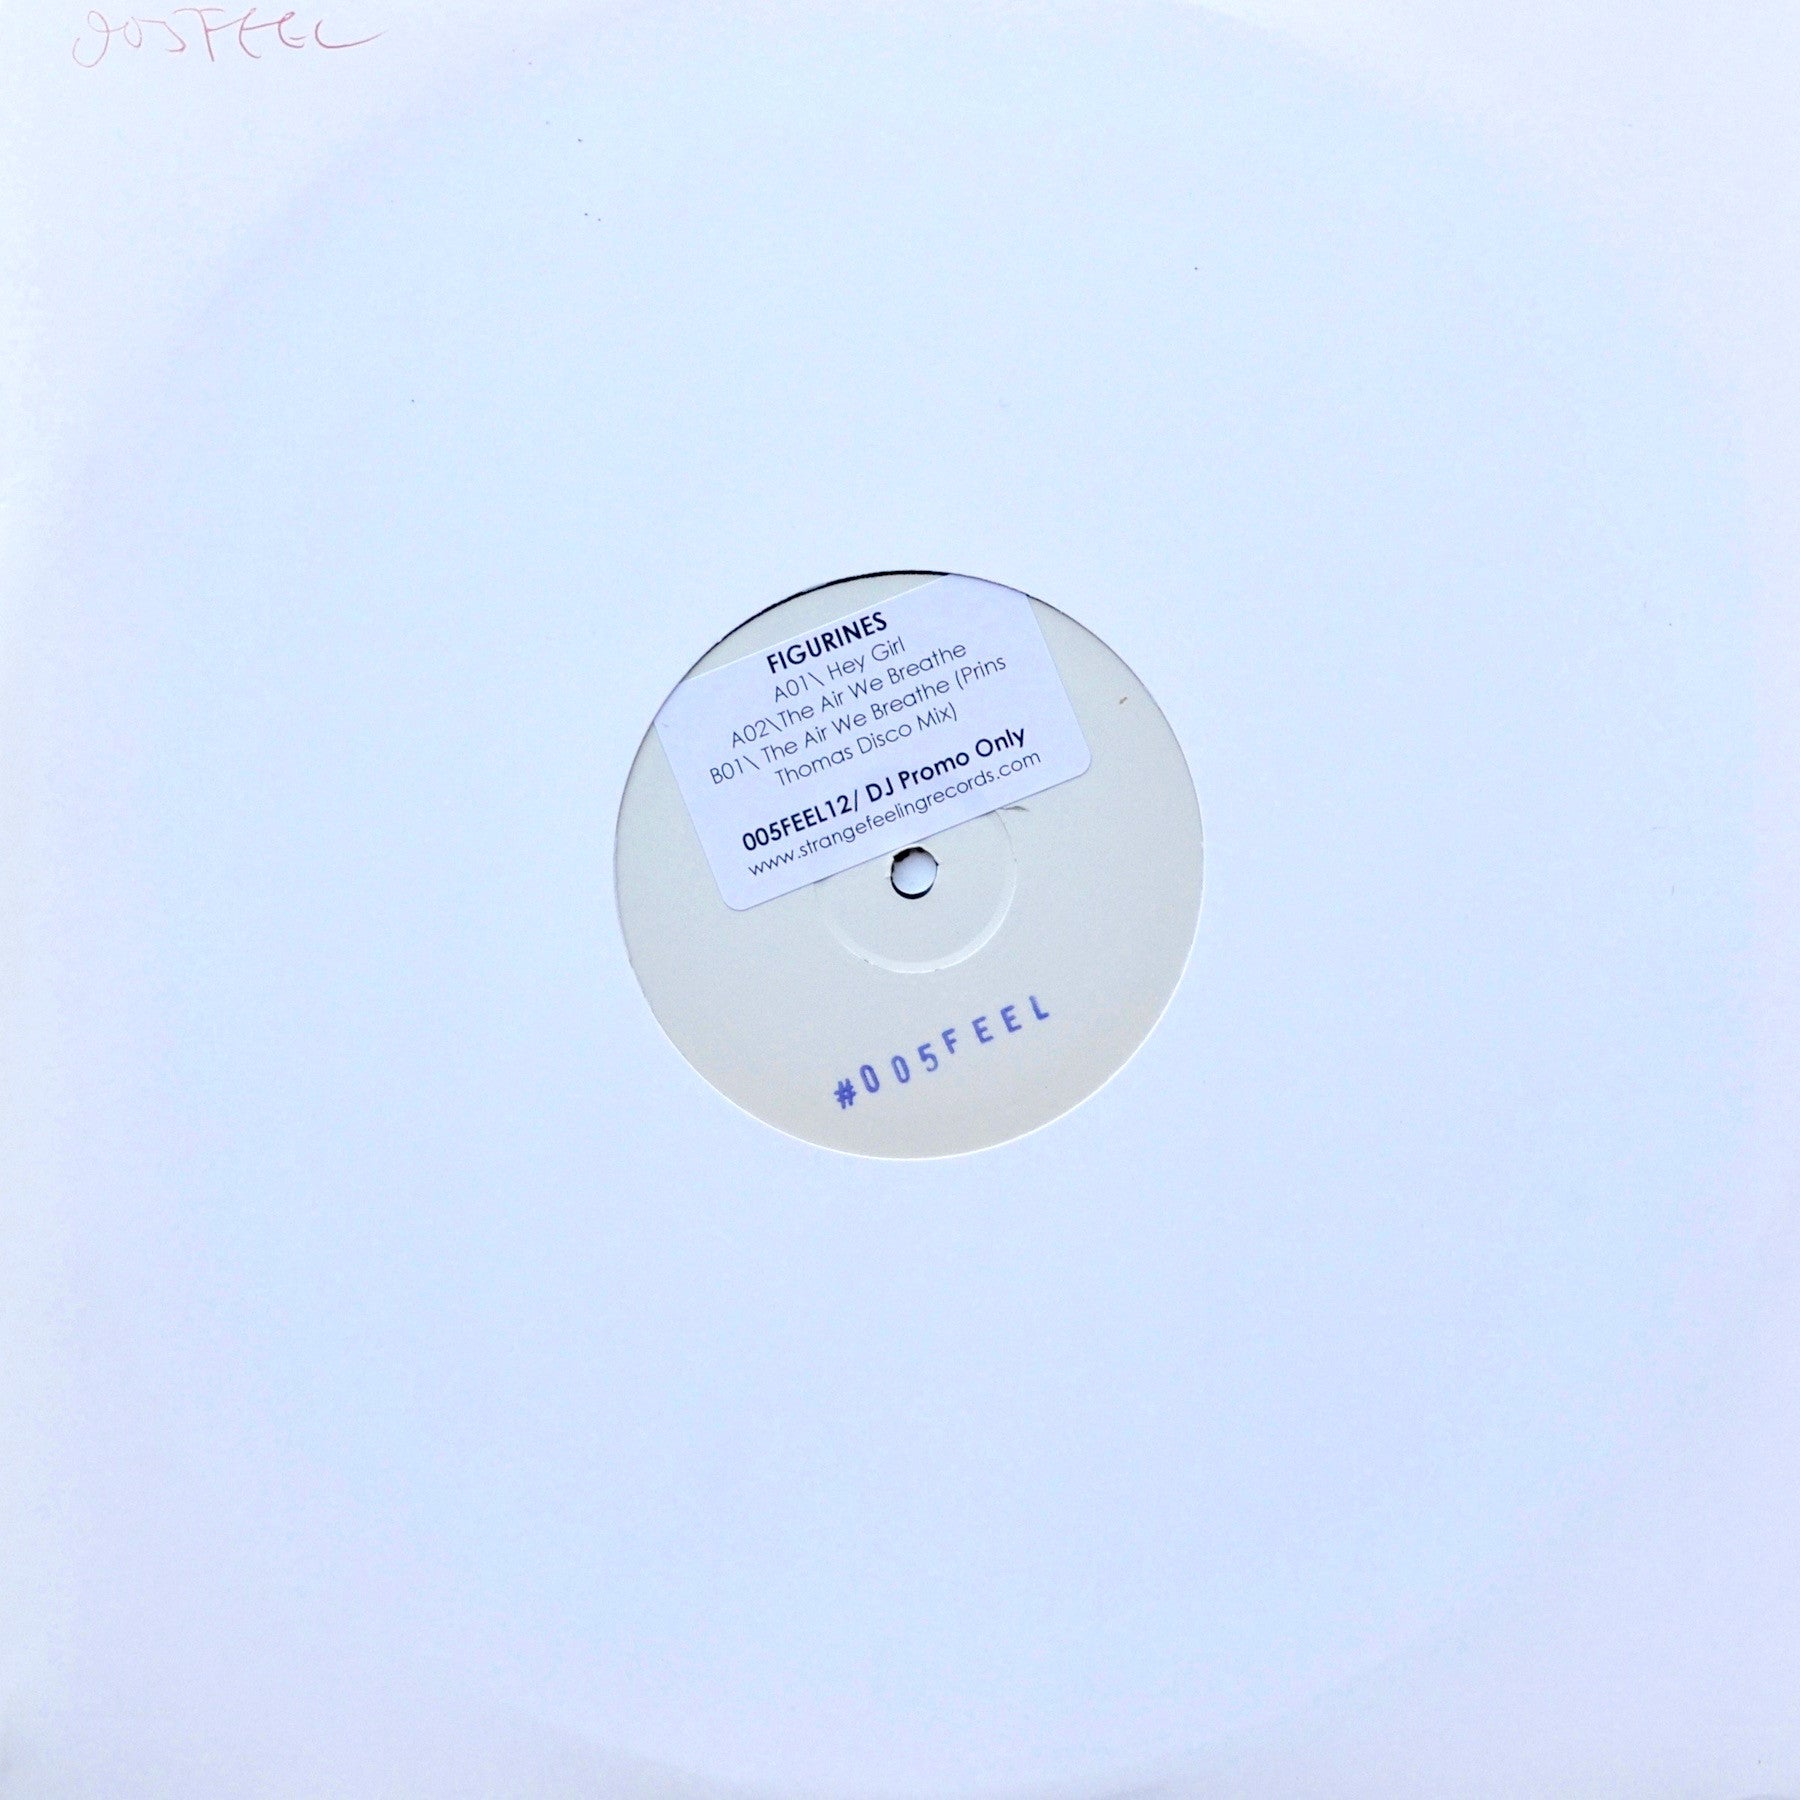 "Figurines - Hey, Girl EP (12"" Vinyl, inc Prins Thomas remix of The Air We Breathe) (Test Pressing)"